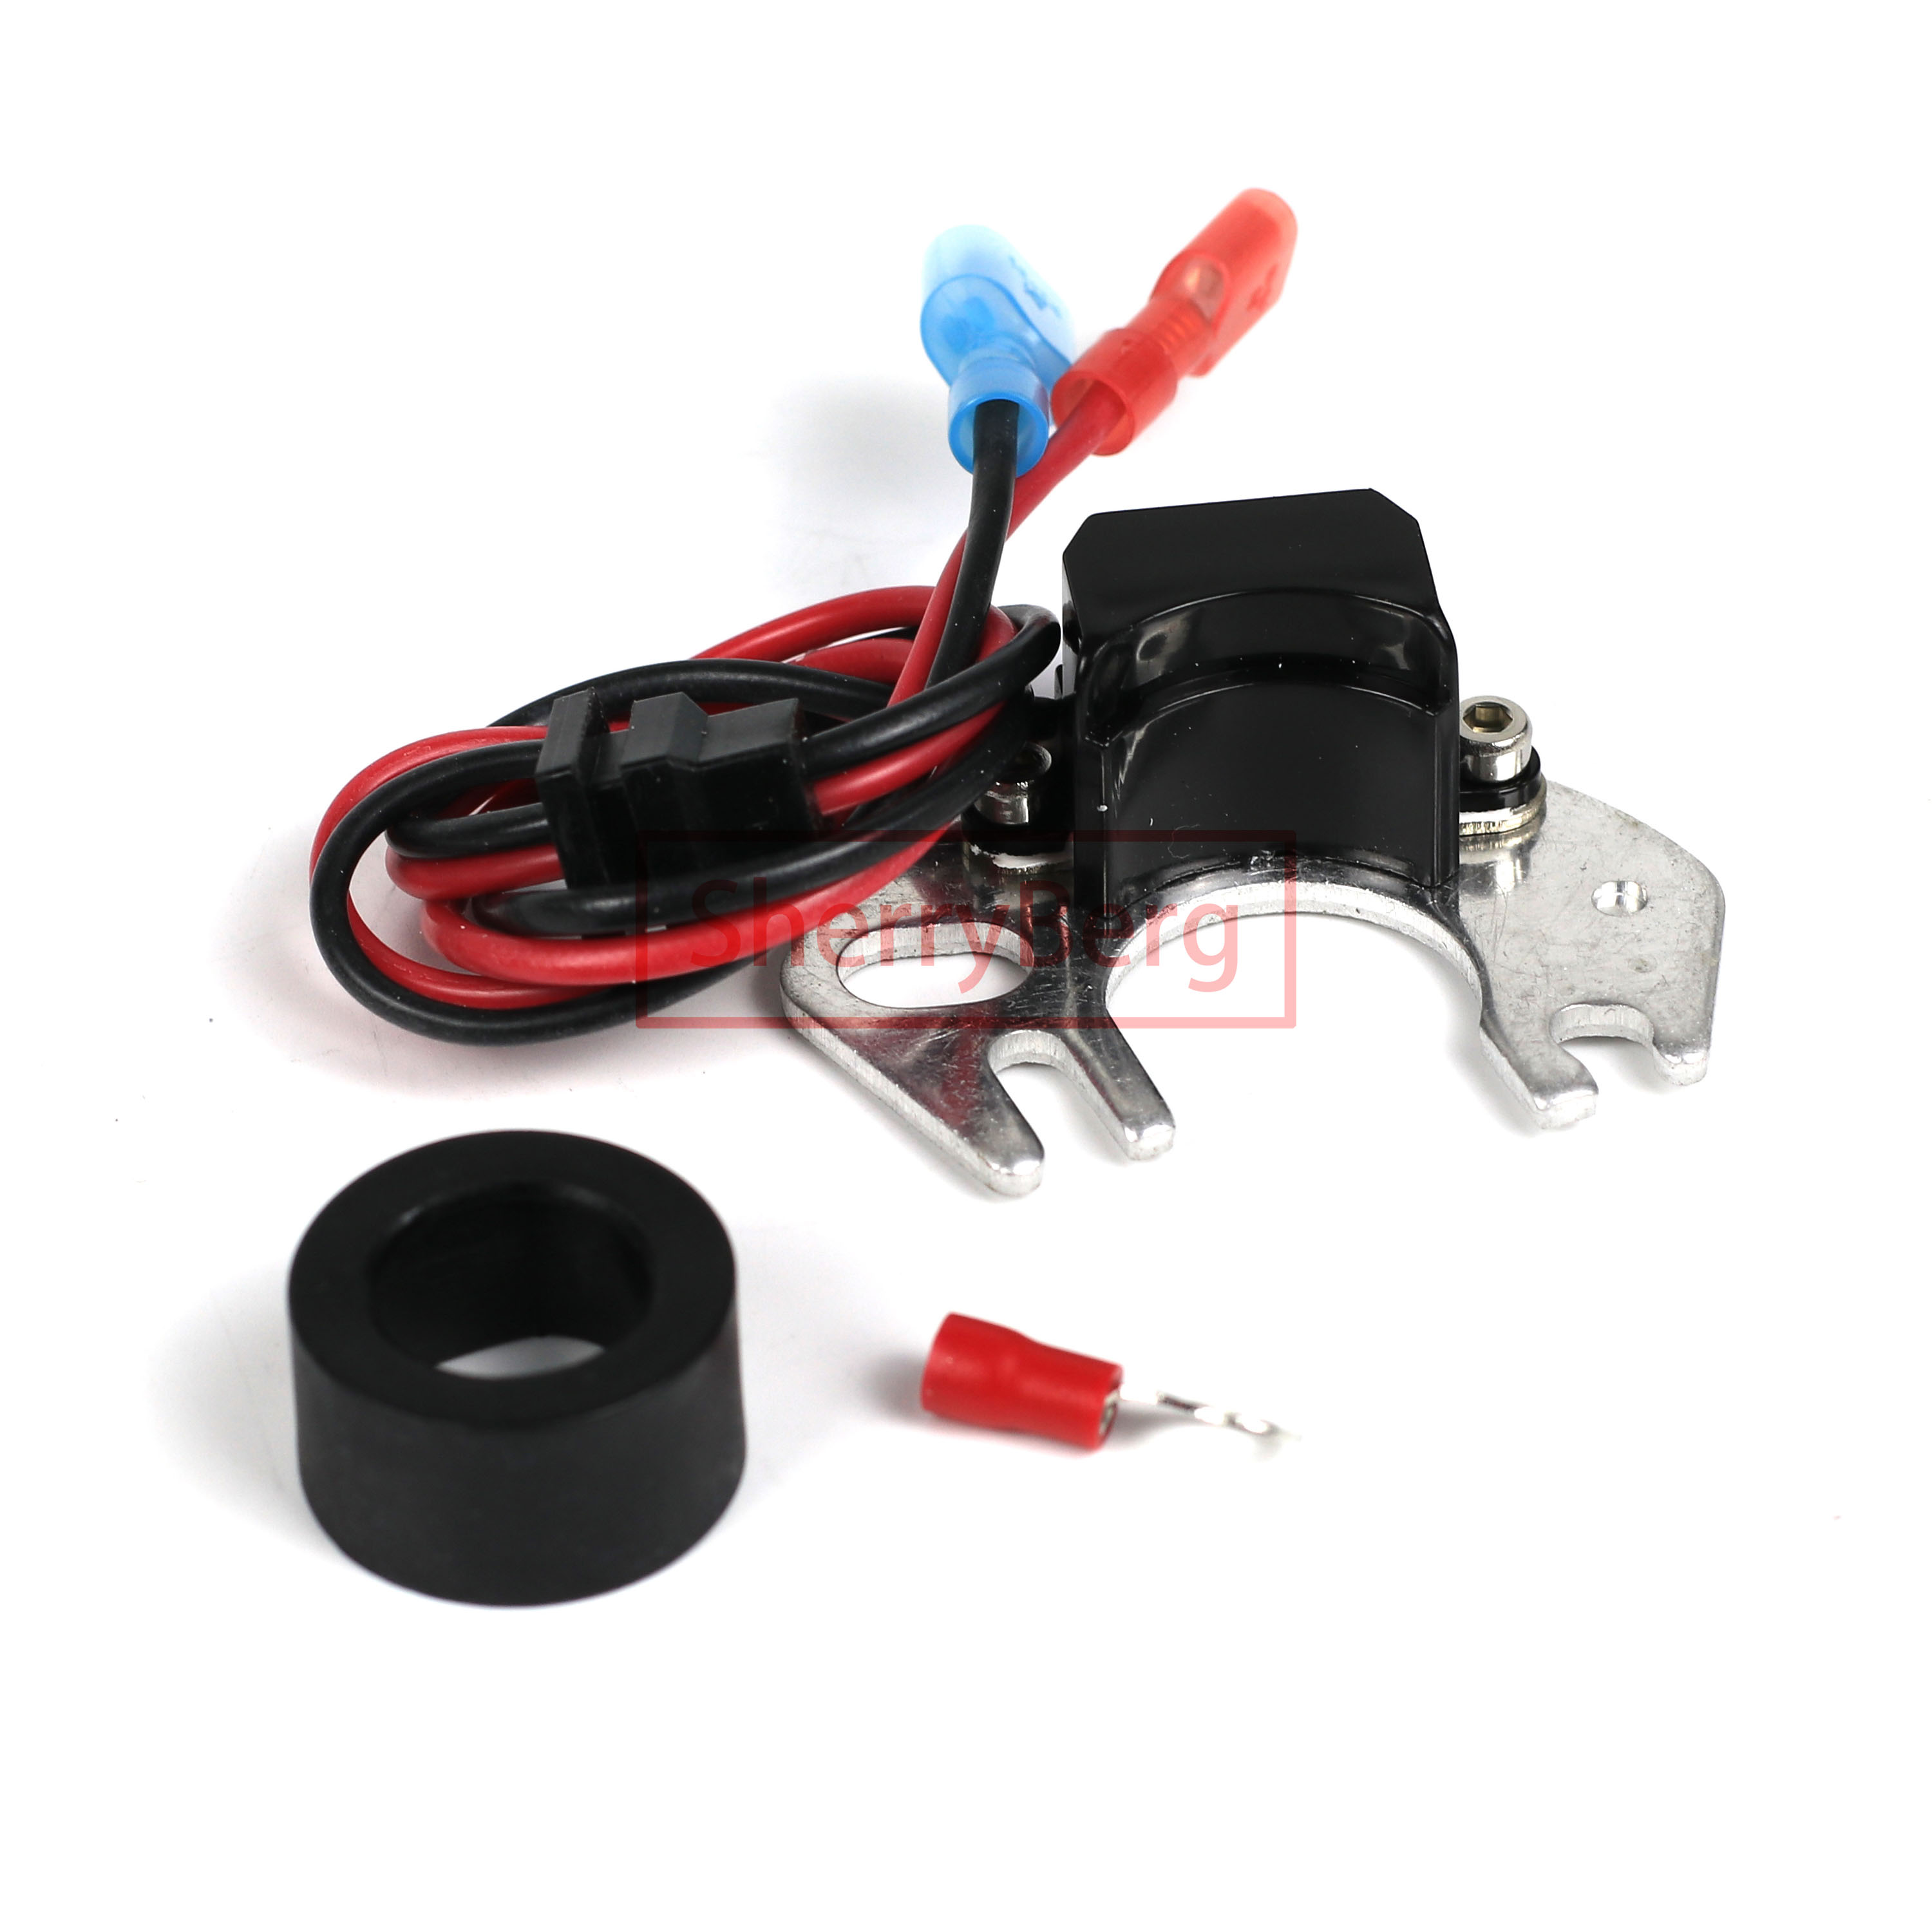 SherryBerg  new Electronic Ignition Conversion Kit Replaces Points in 4-cyl Hitachi Distributor for nissan Datsun distirbutor ki